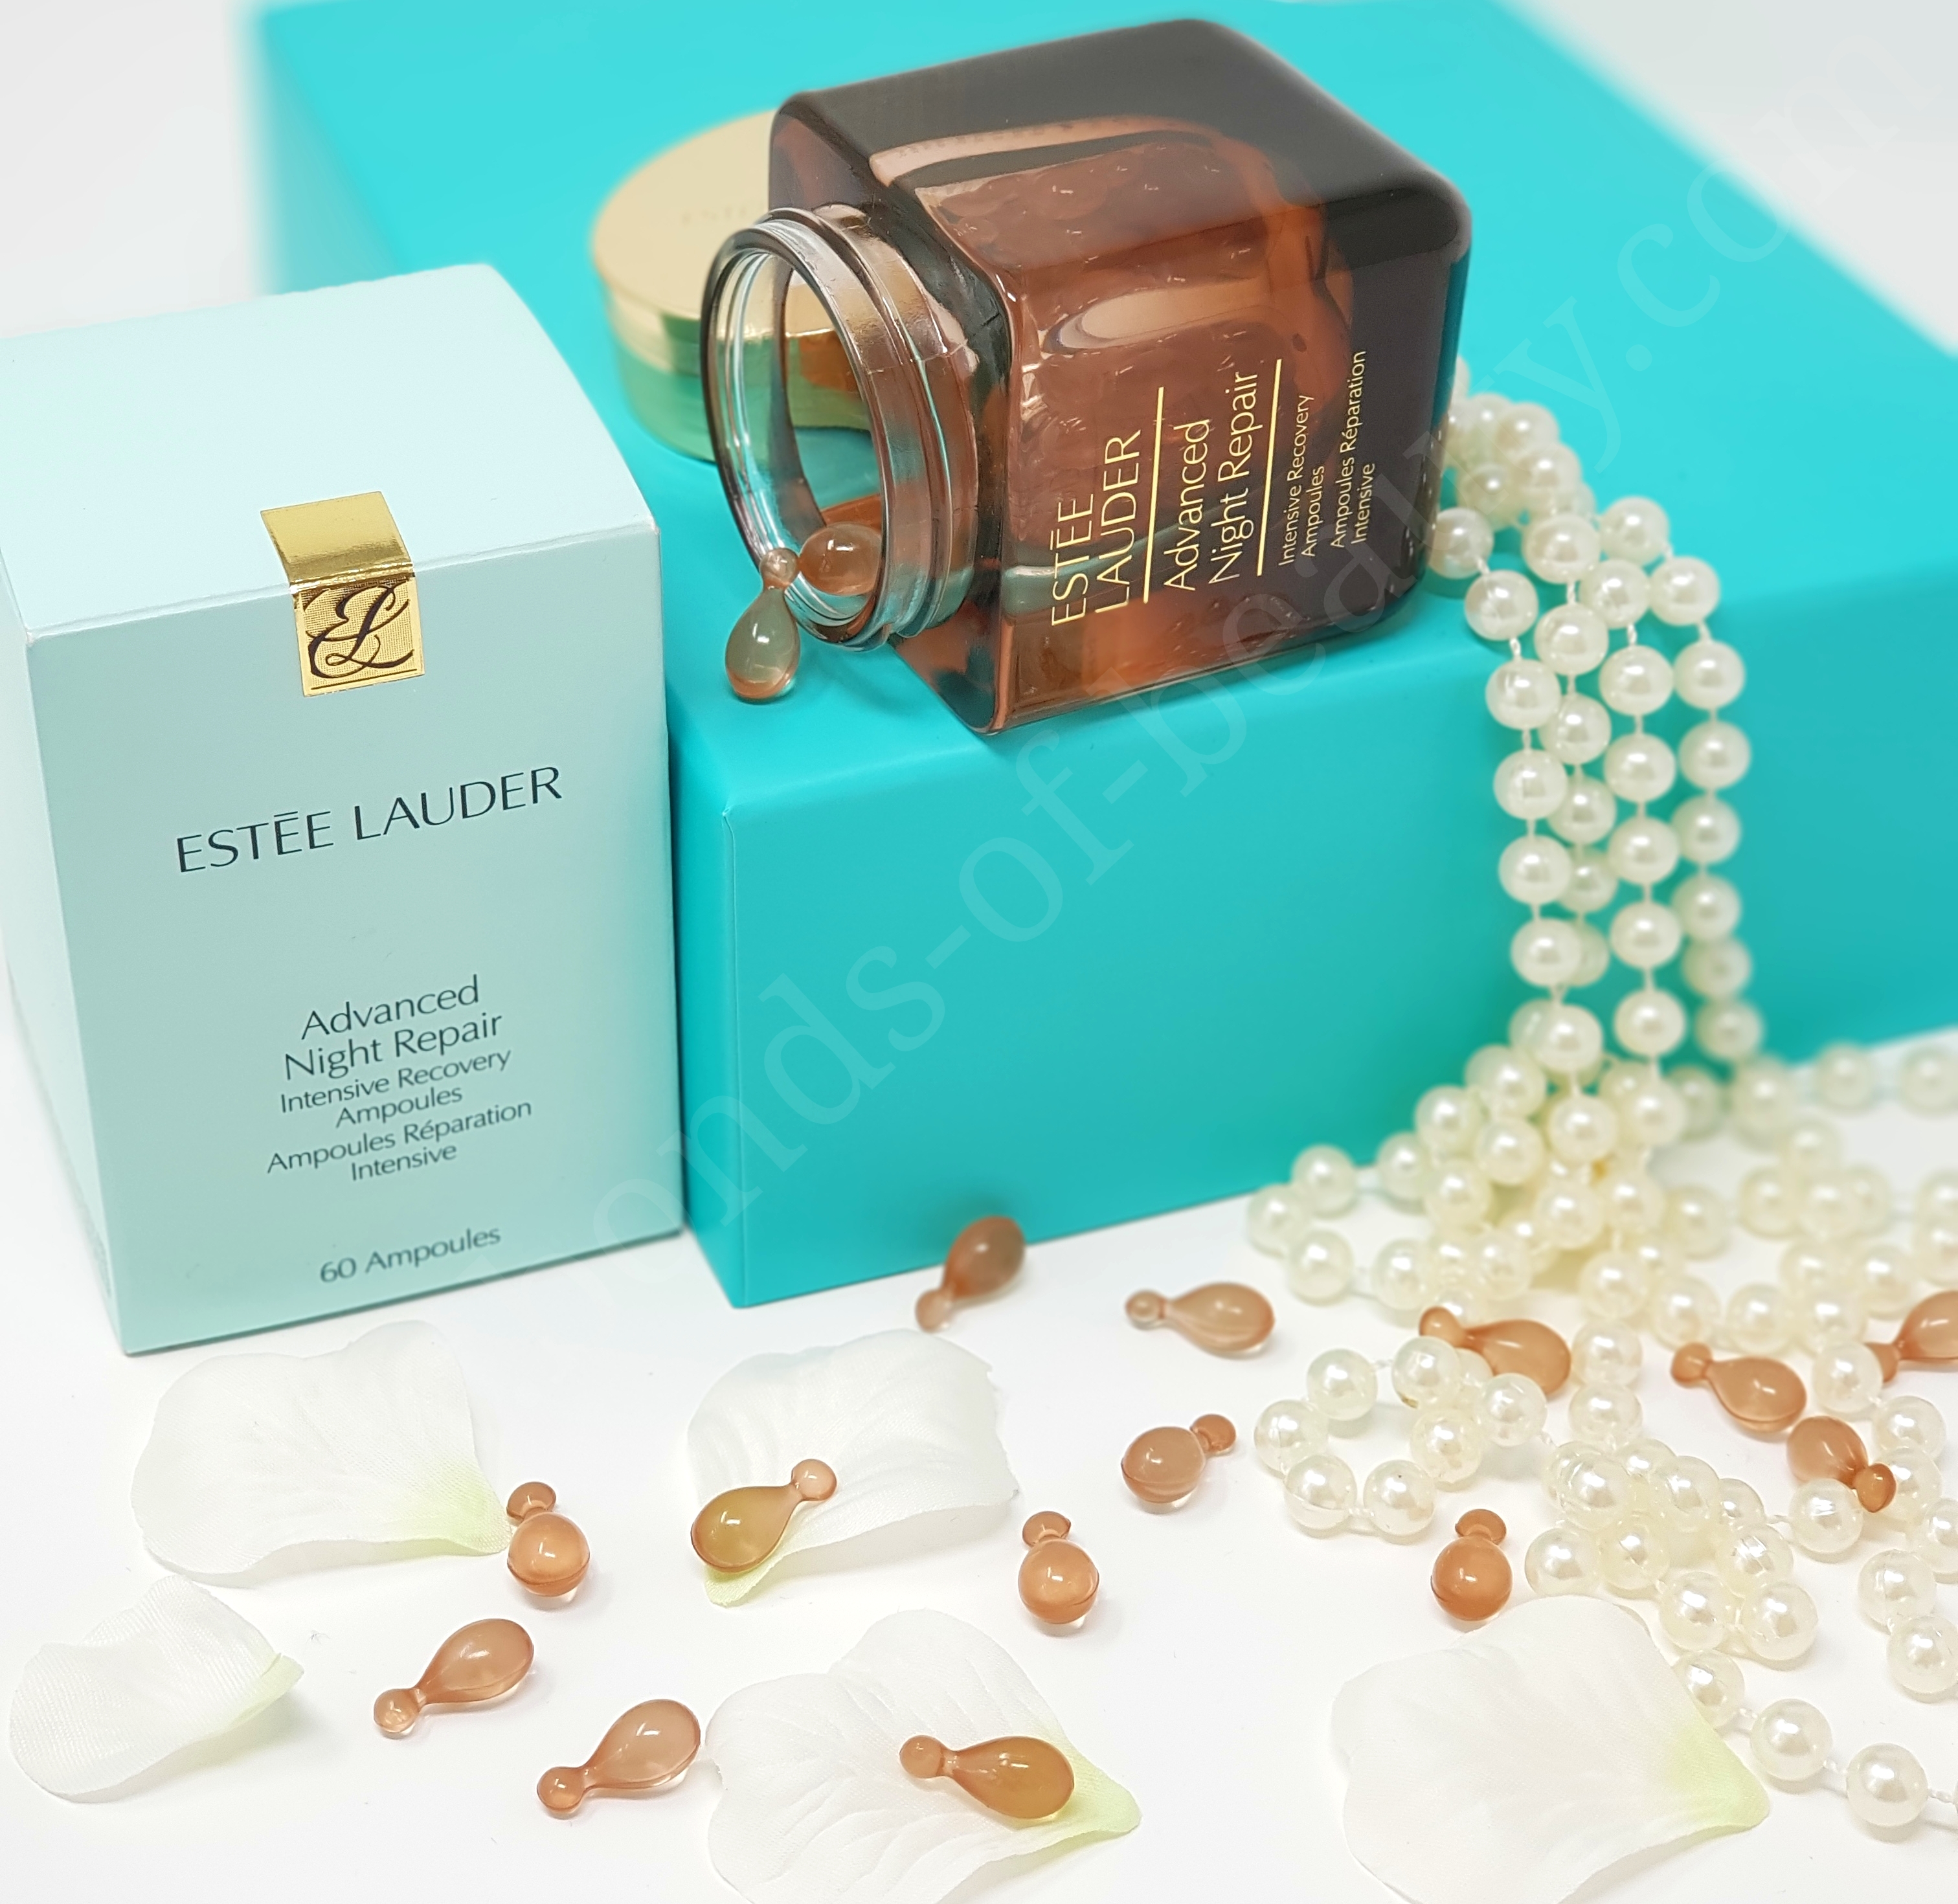 Estee Lauder Advanced Night Repair Intensive Recovery Ampoules In Depth Review And Ingredient Analysis Bonds Of Beauty